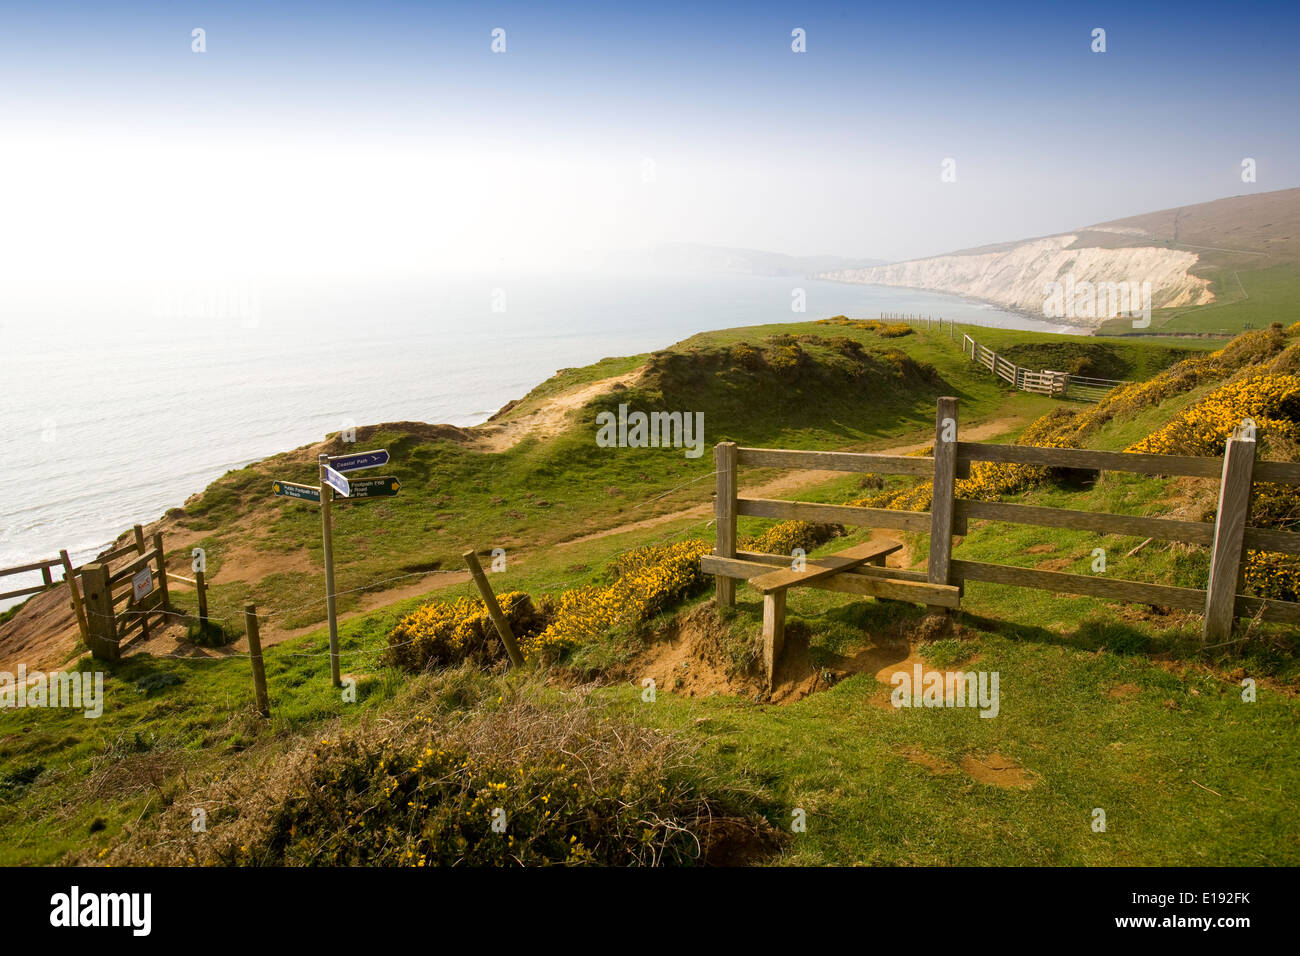 Coastall, Foot Path, Compton Bay, Freshwater, Styles, Signs, Isle of Wight, England, UK, - Stock Image